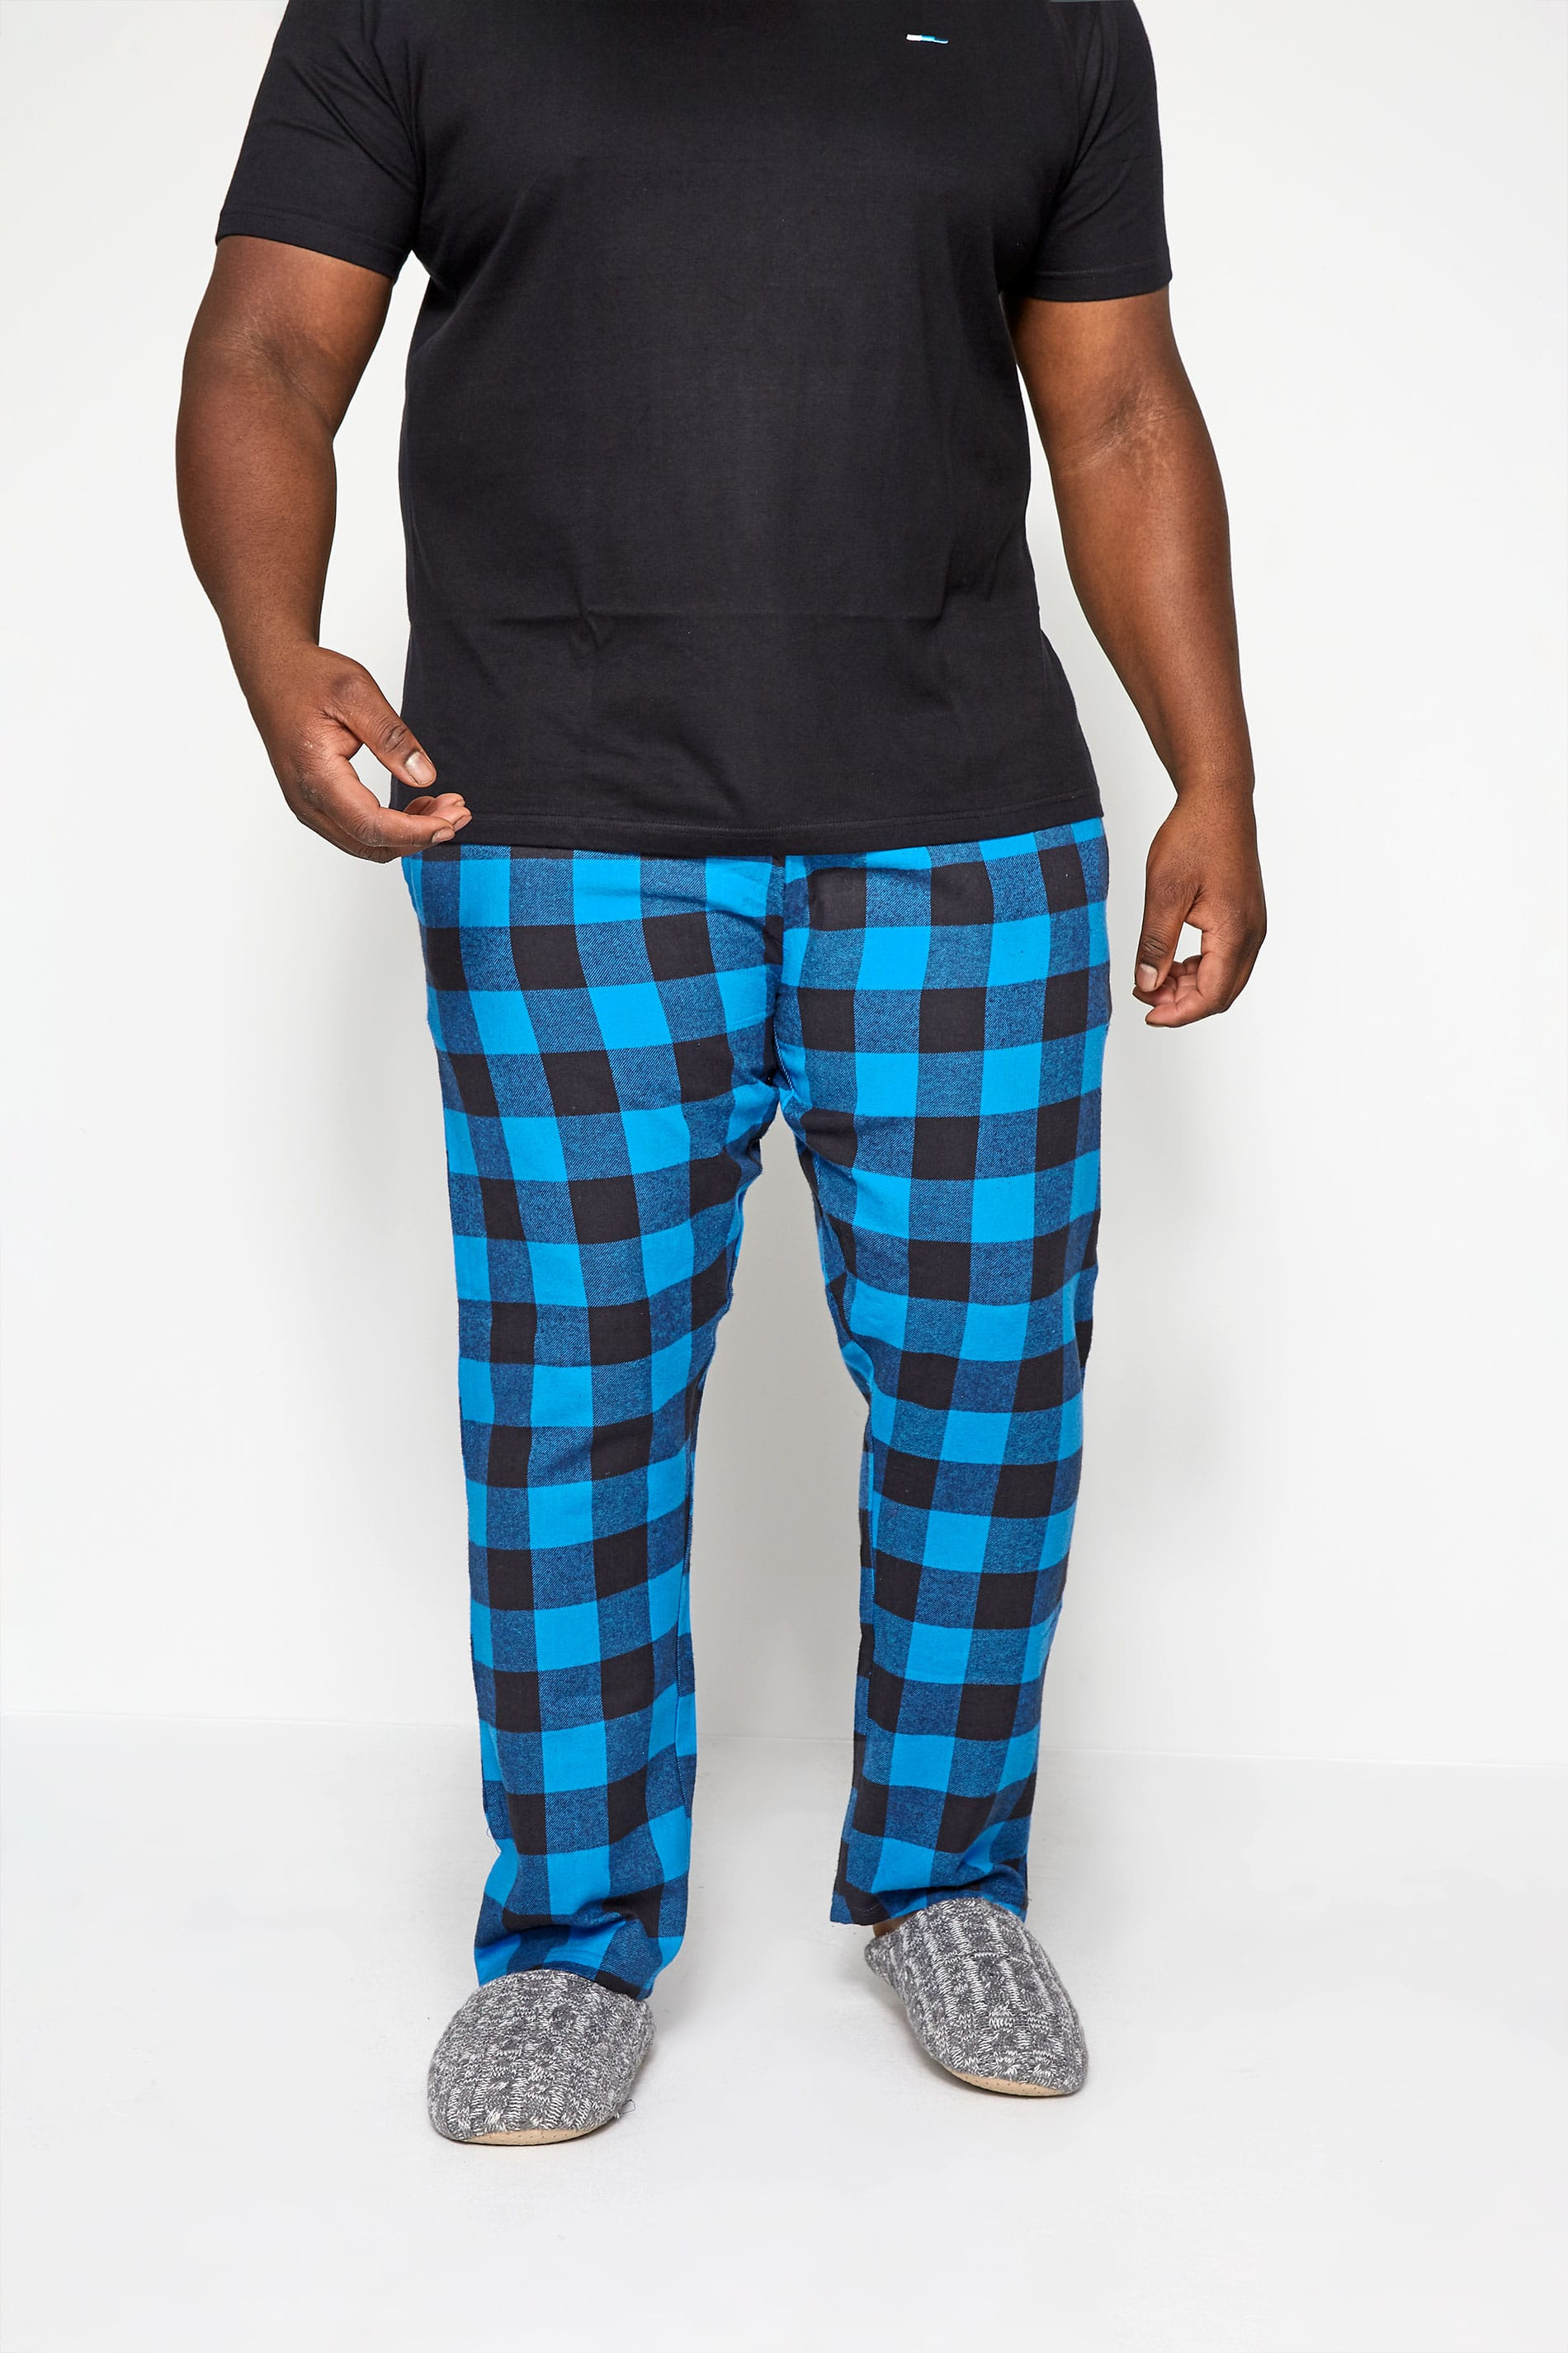 BadRhino Blue Woven Check Bottoms